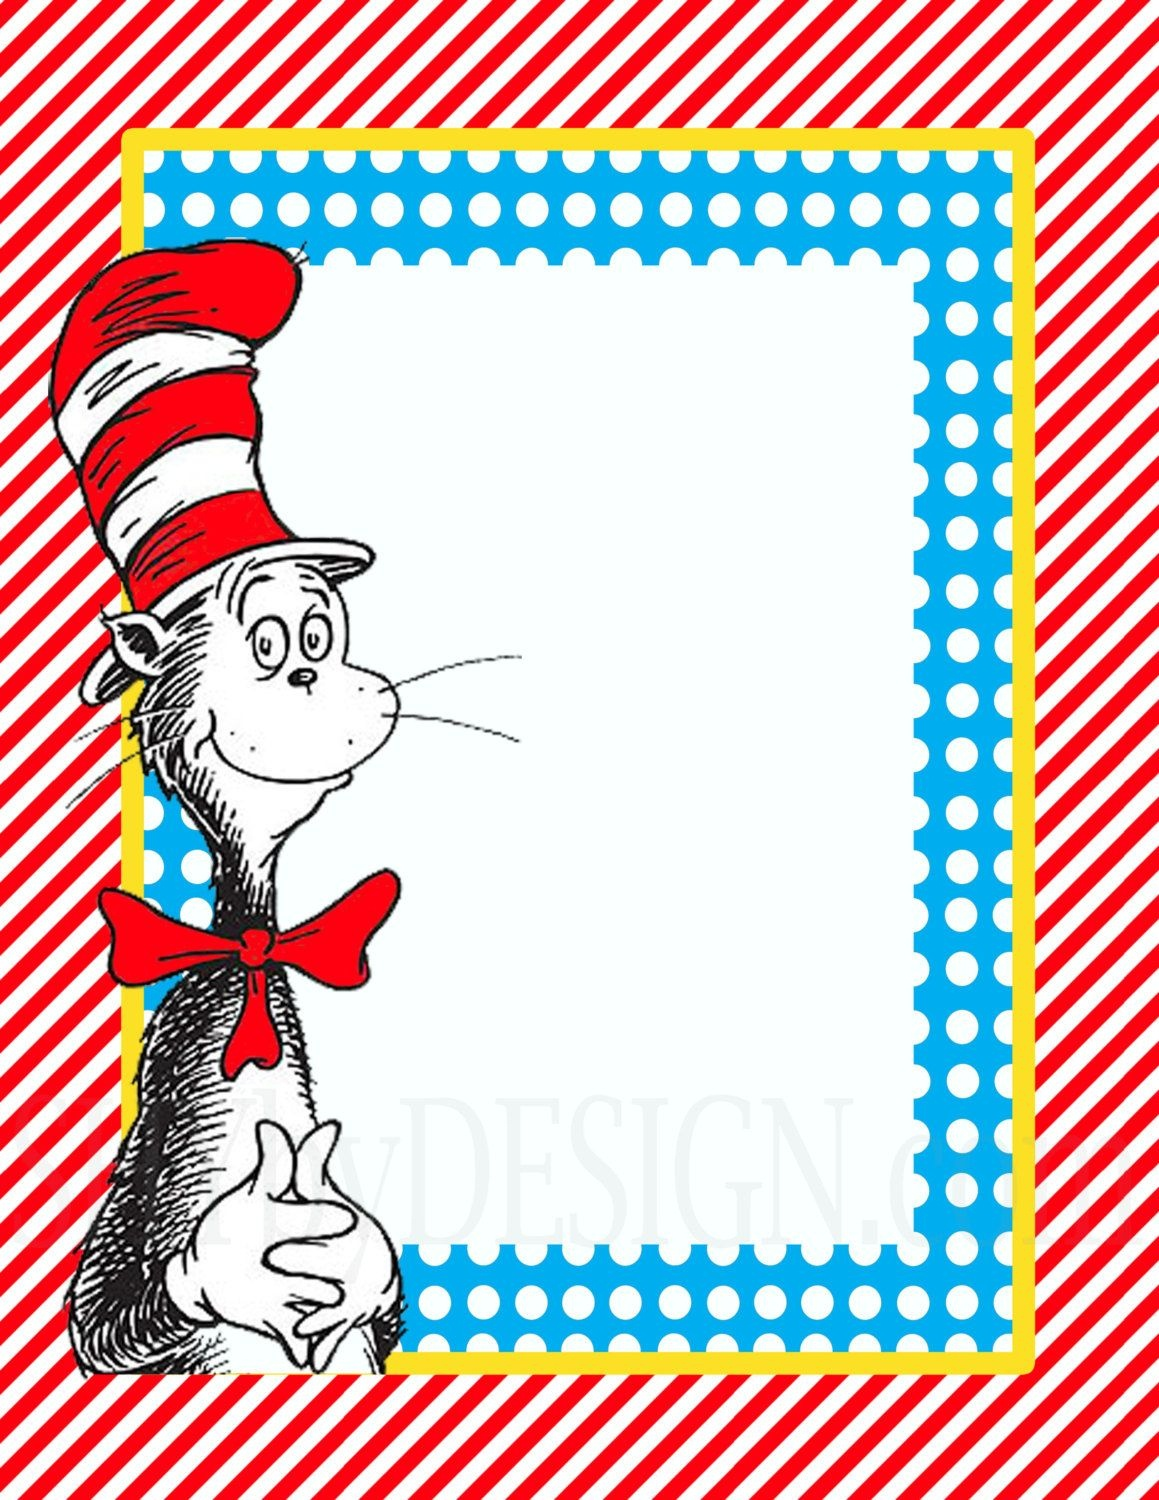 3 Diy Printable Dr. Seuss Sign Templates | Its So Seussical | Dr - Dr Seuss Free Printable Templates